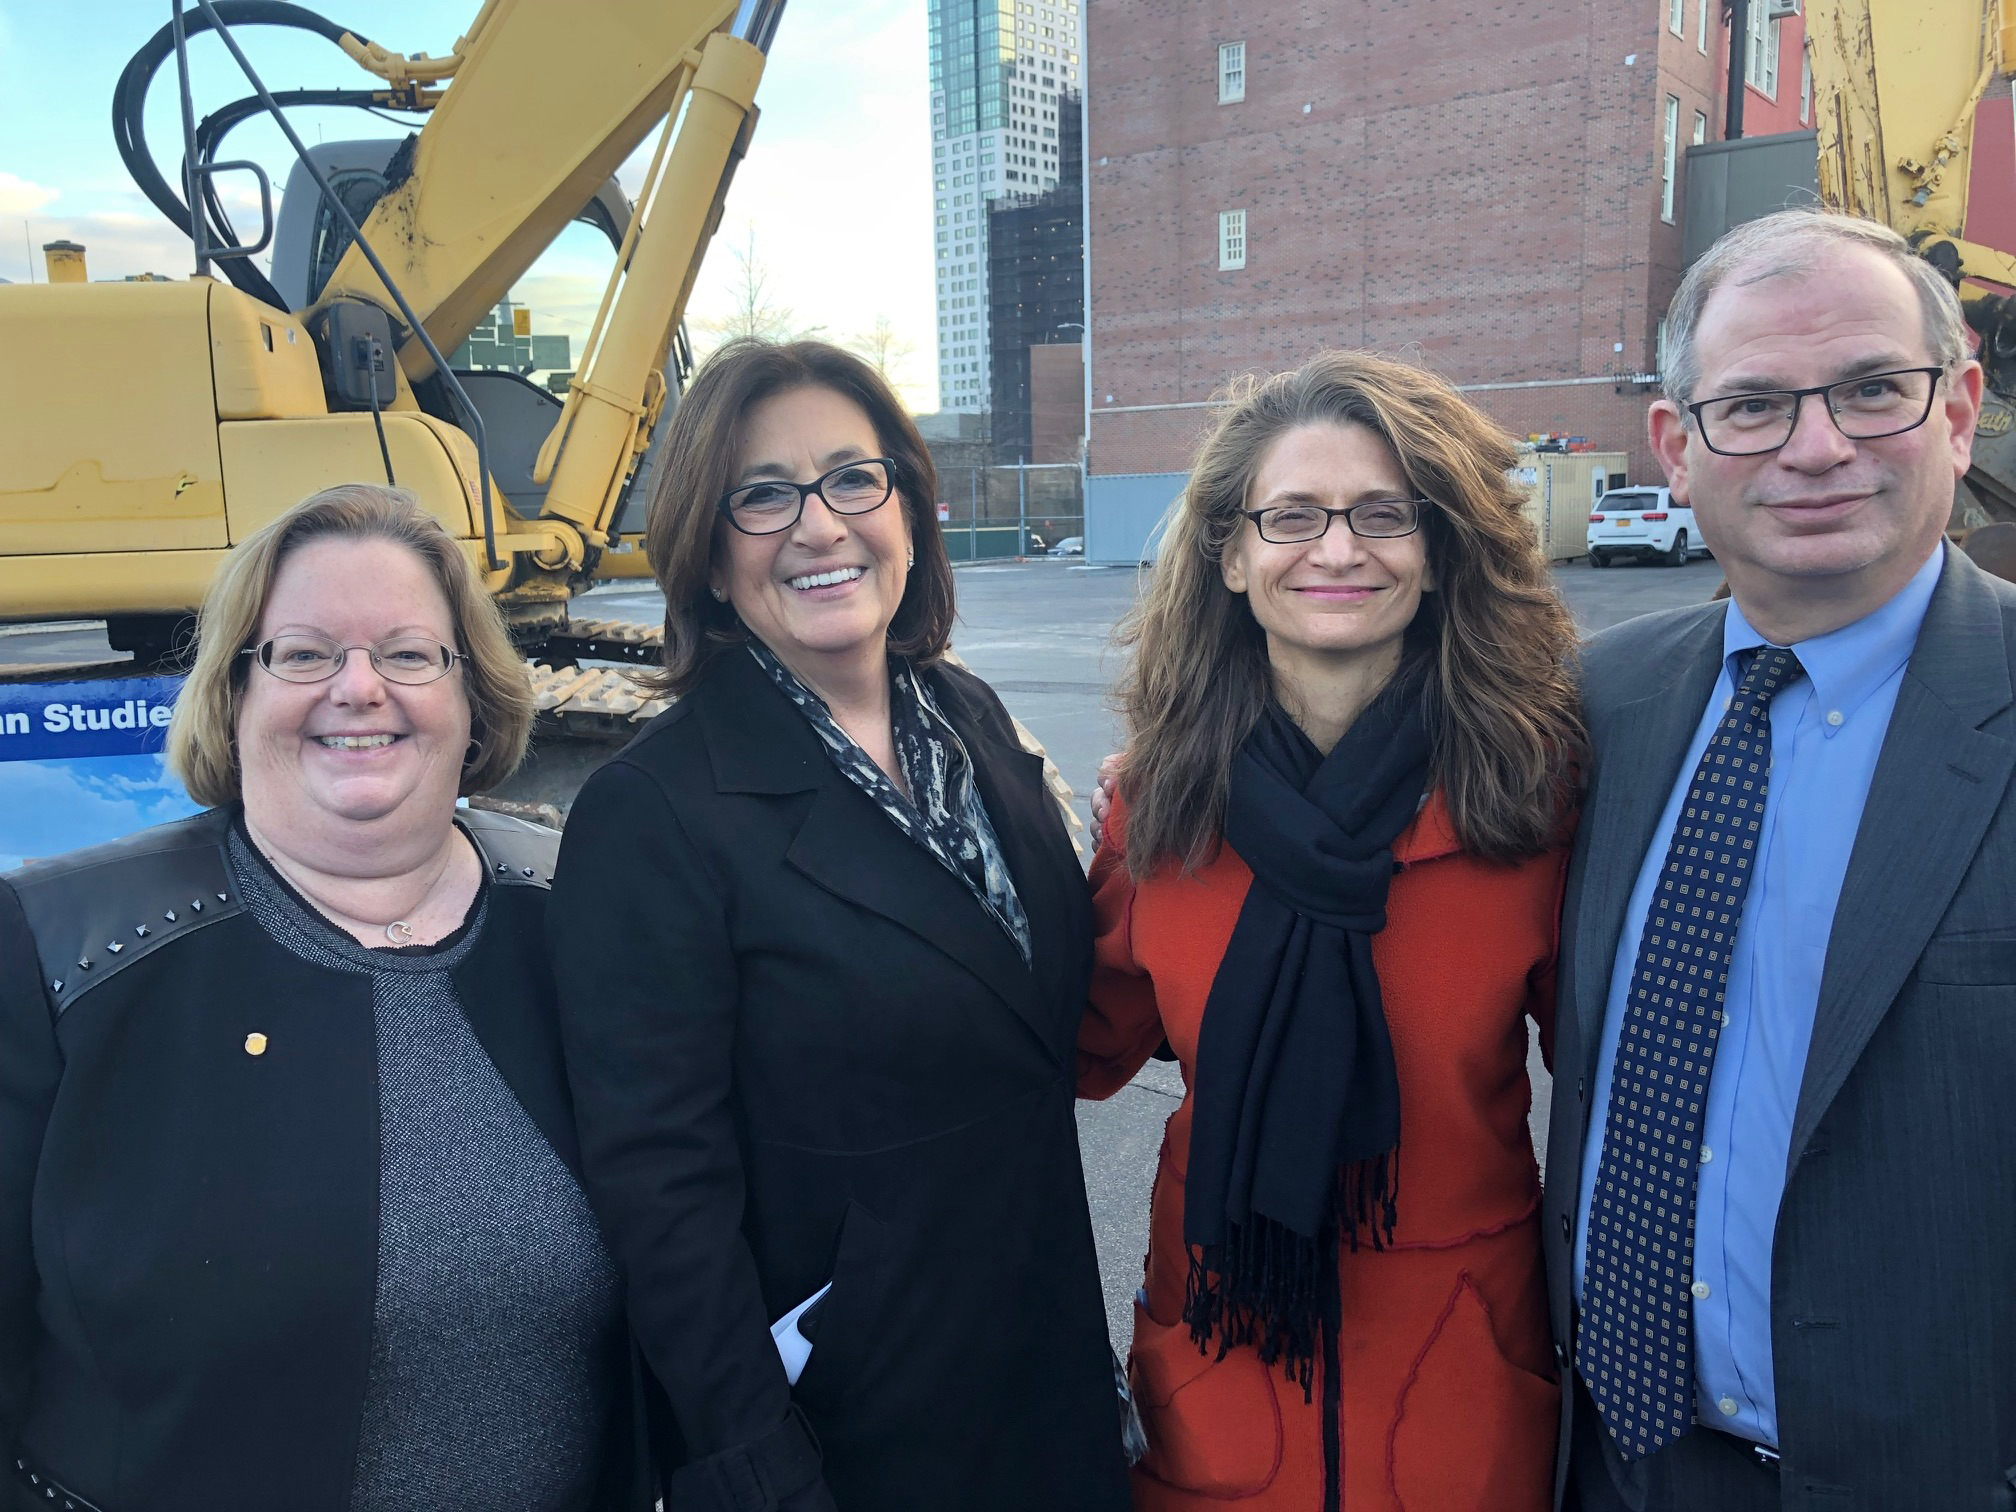 Assemblywoman Catherine Nolan, Lorraine Grillo, President, School Construction Authority, Karin Goldmark, Deputy Chancellor, School Planning & Development and William Bassell, Principal, Academy o